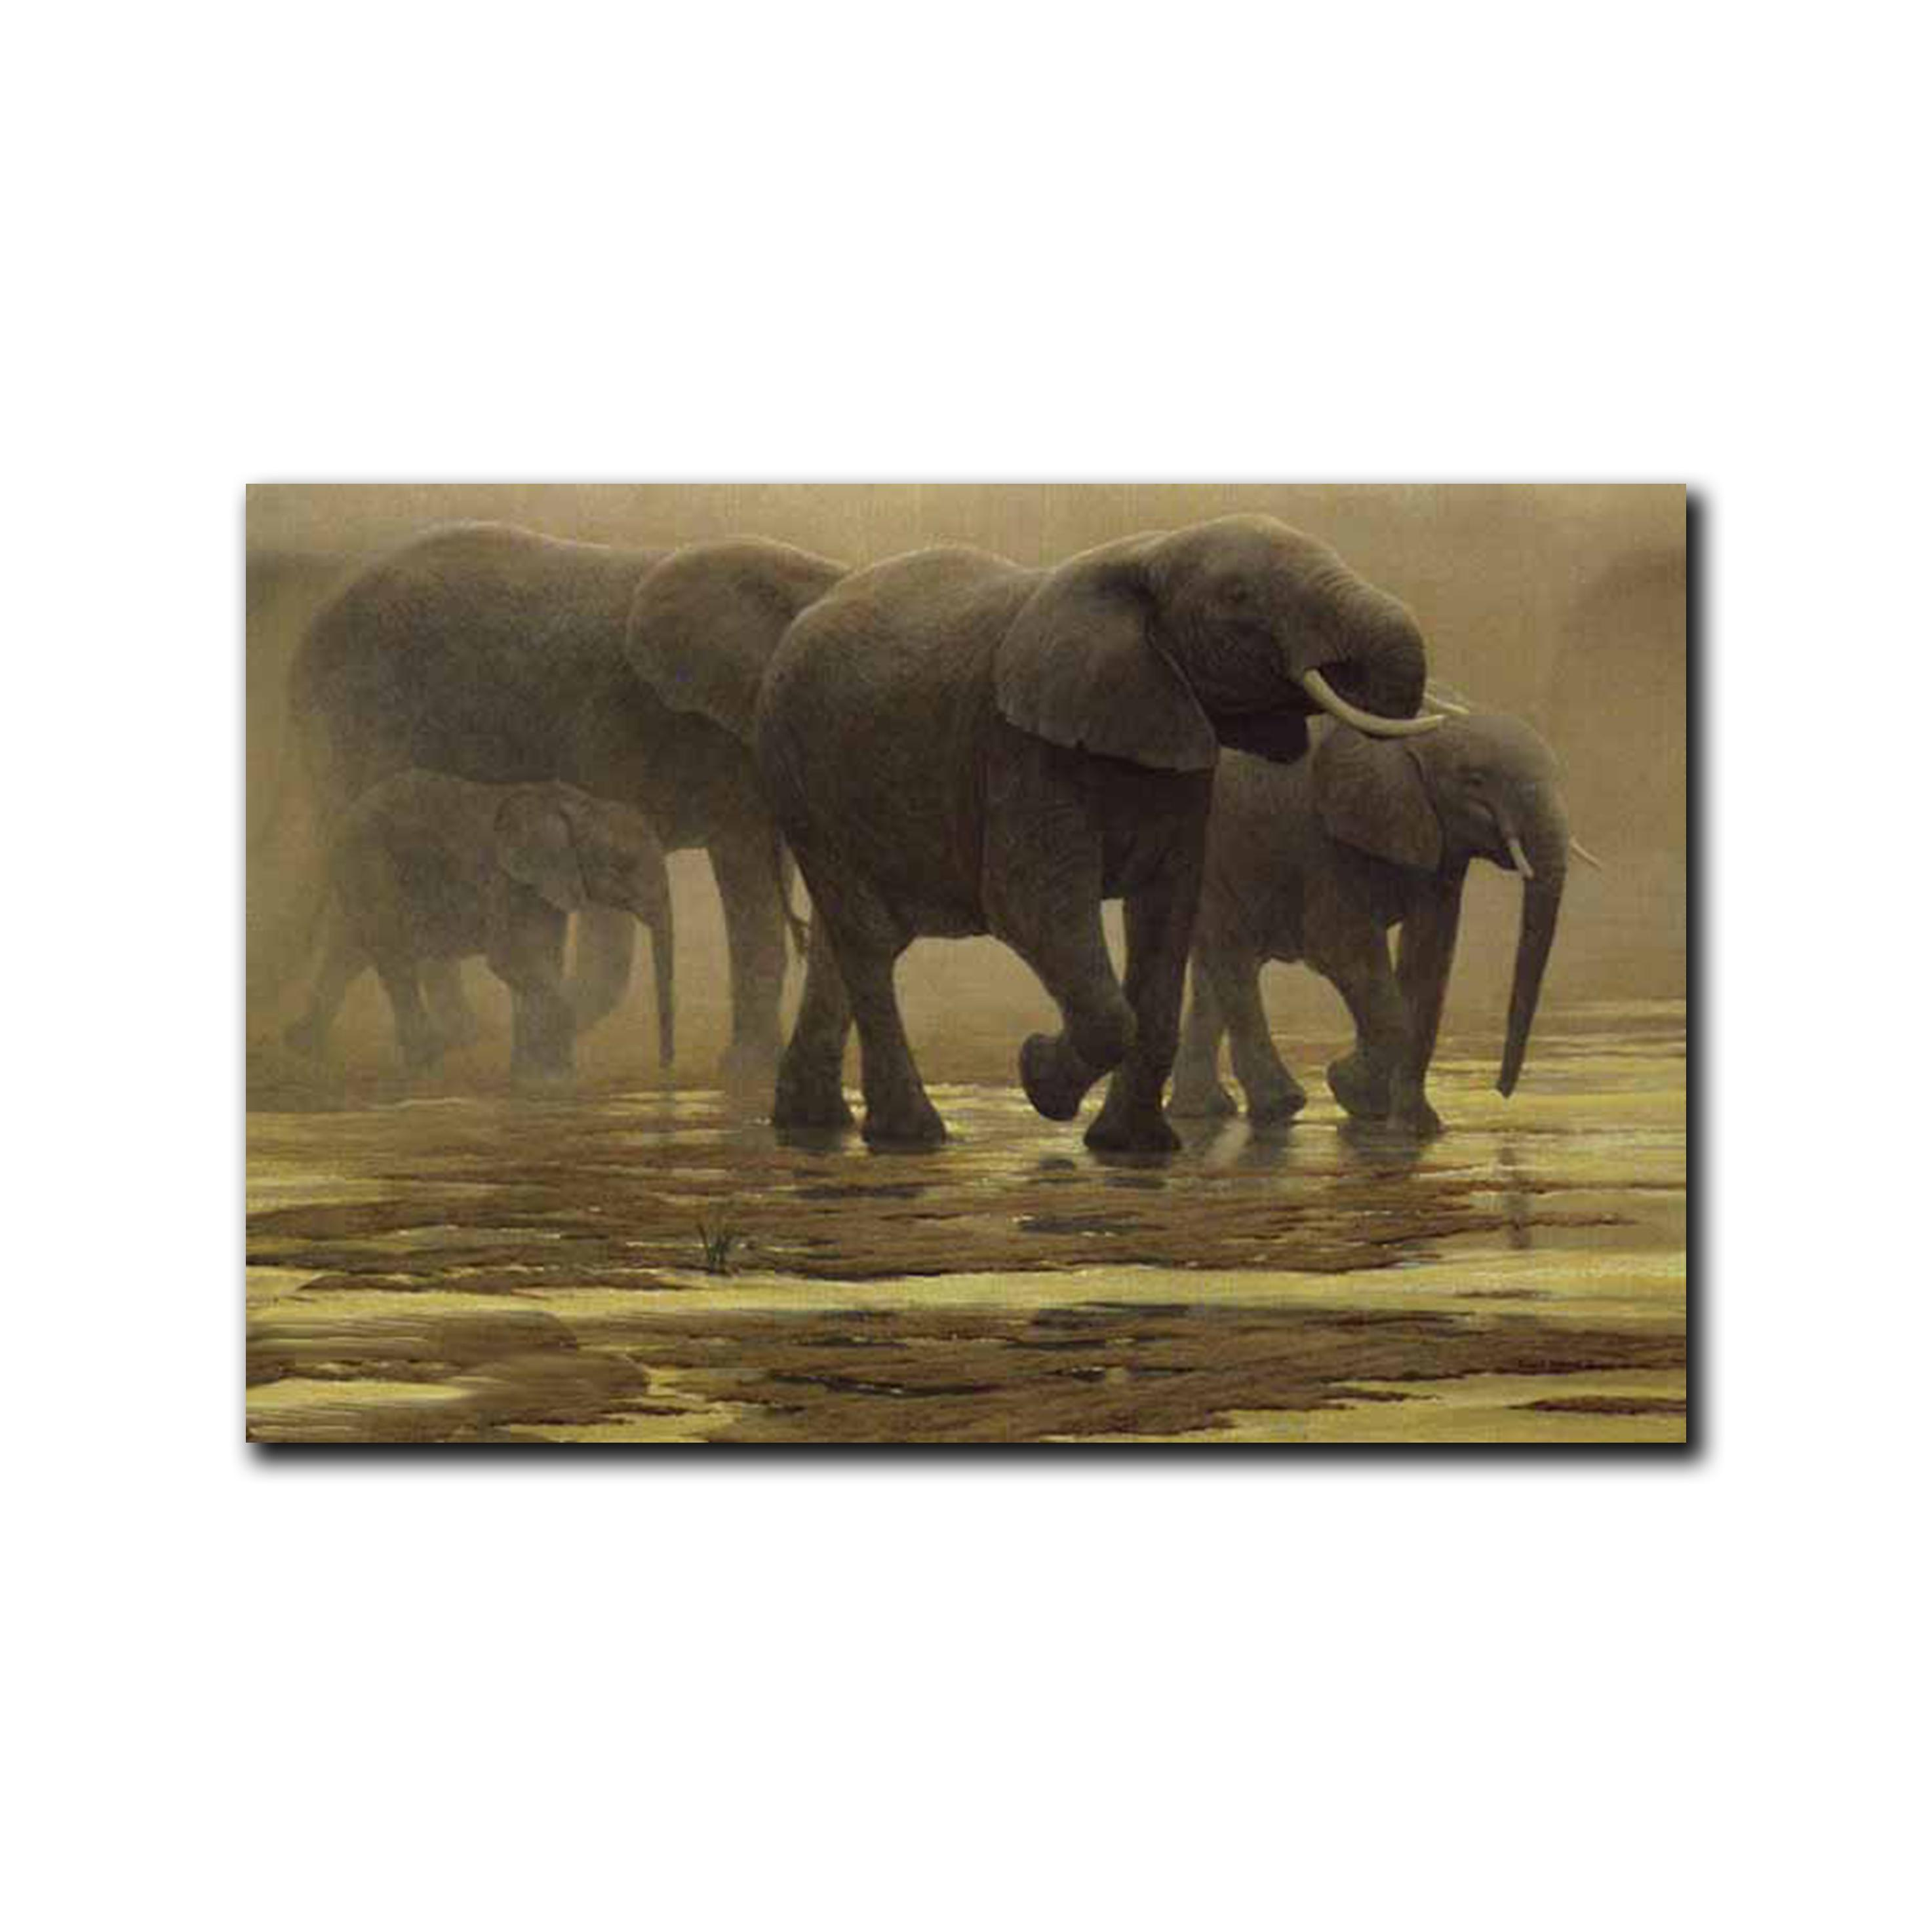 "Robert Bateman's ""By The River- Elephants"" Limited Edition Canvas Showstopper"